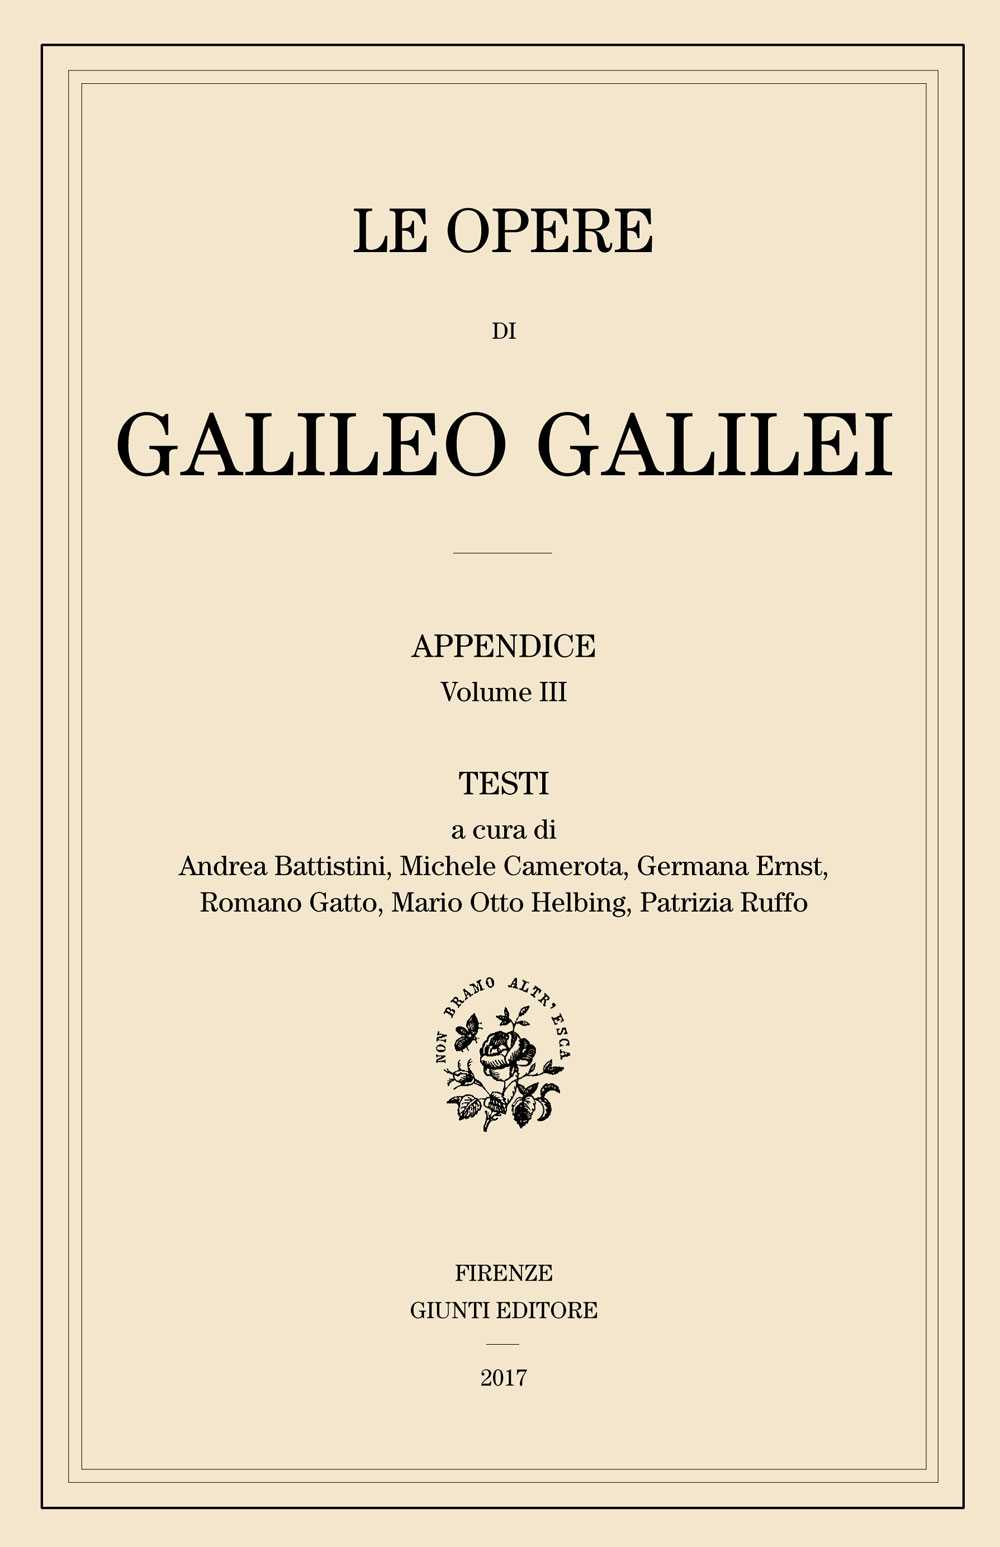 A new volume of the Updated Supplement to the National Edition of Galilei's Works: Testi